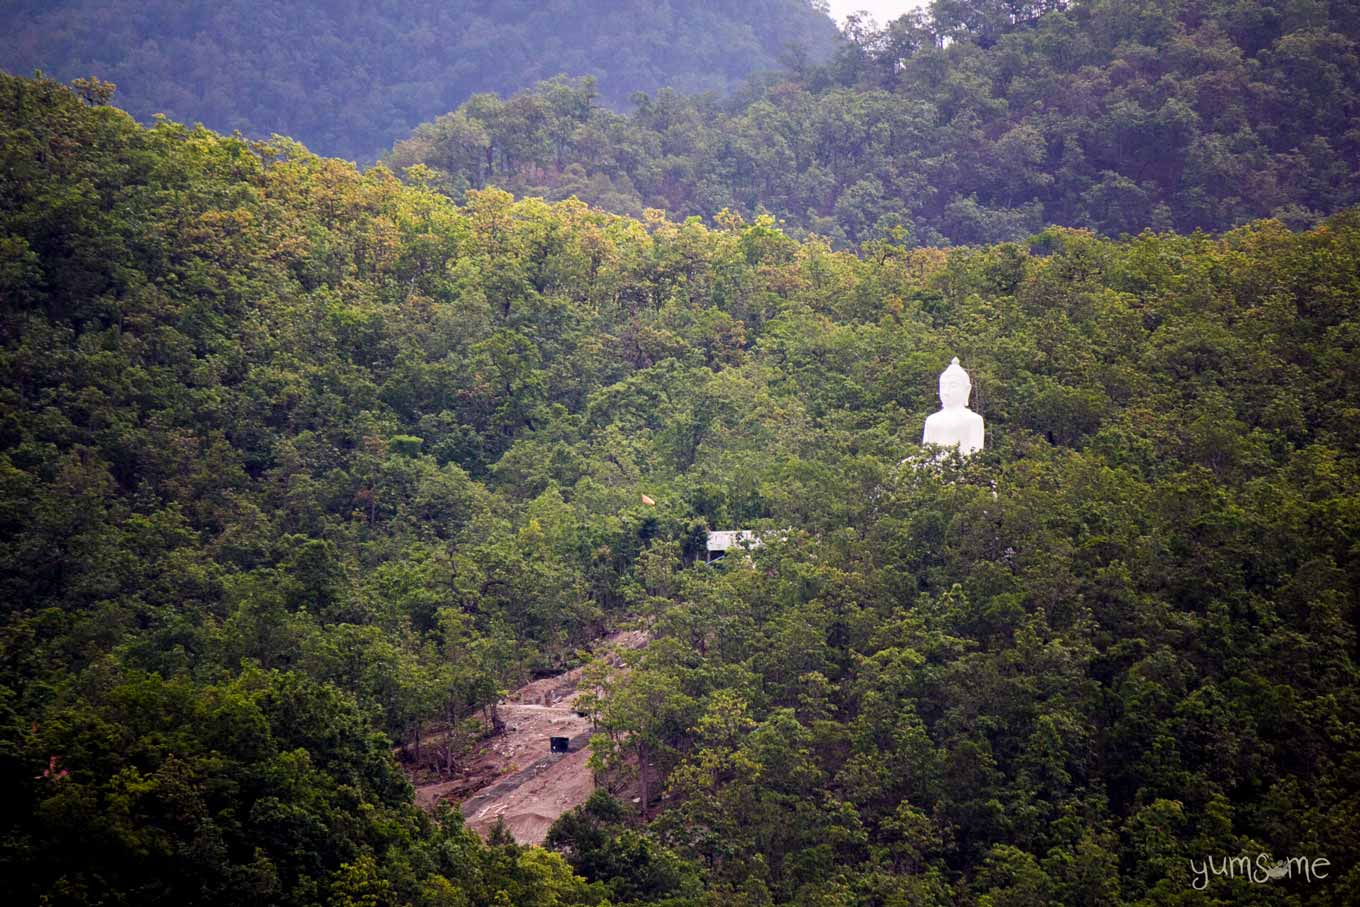 Giant white Buddha statue emerging from the jungle.